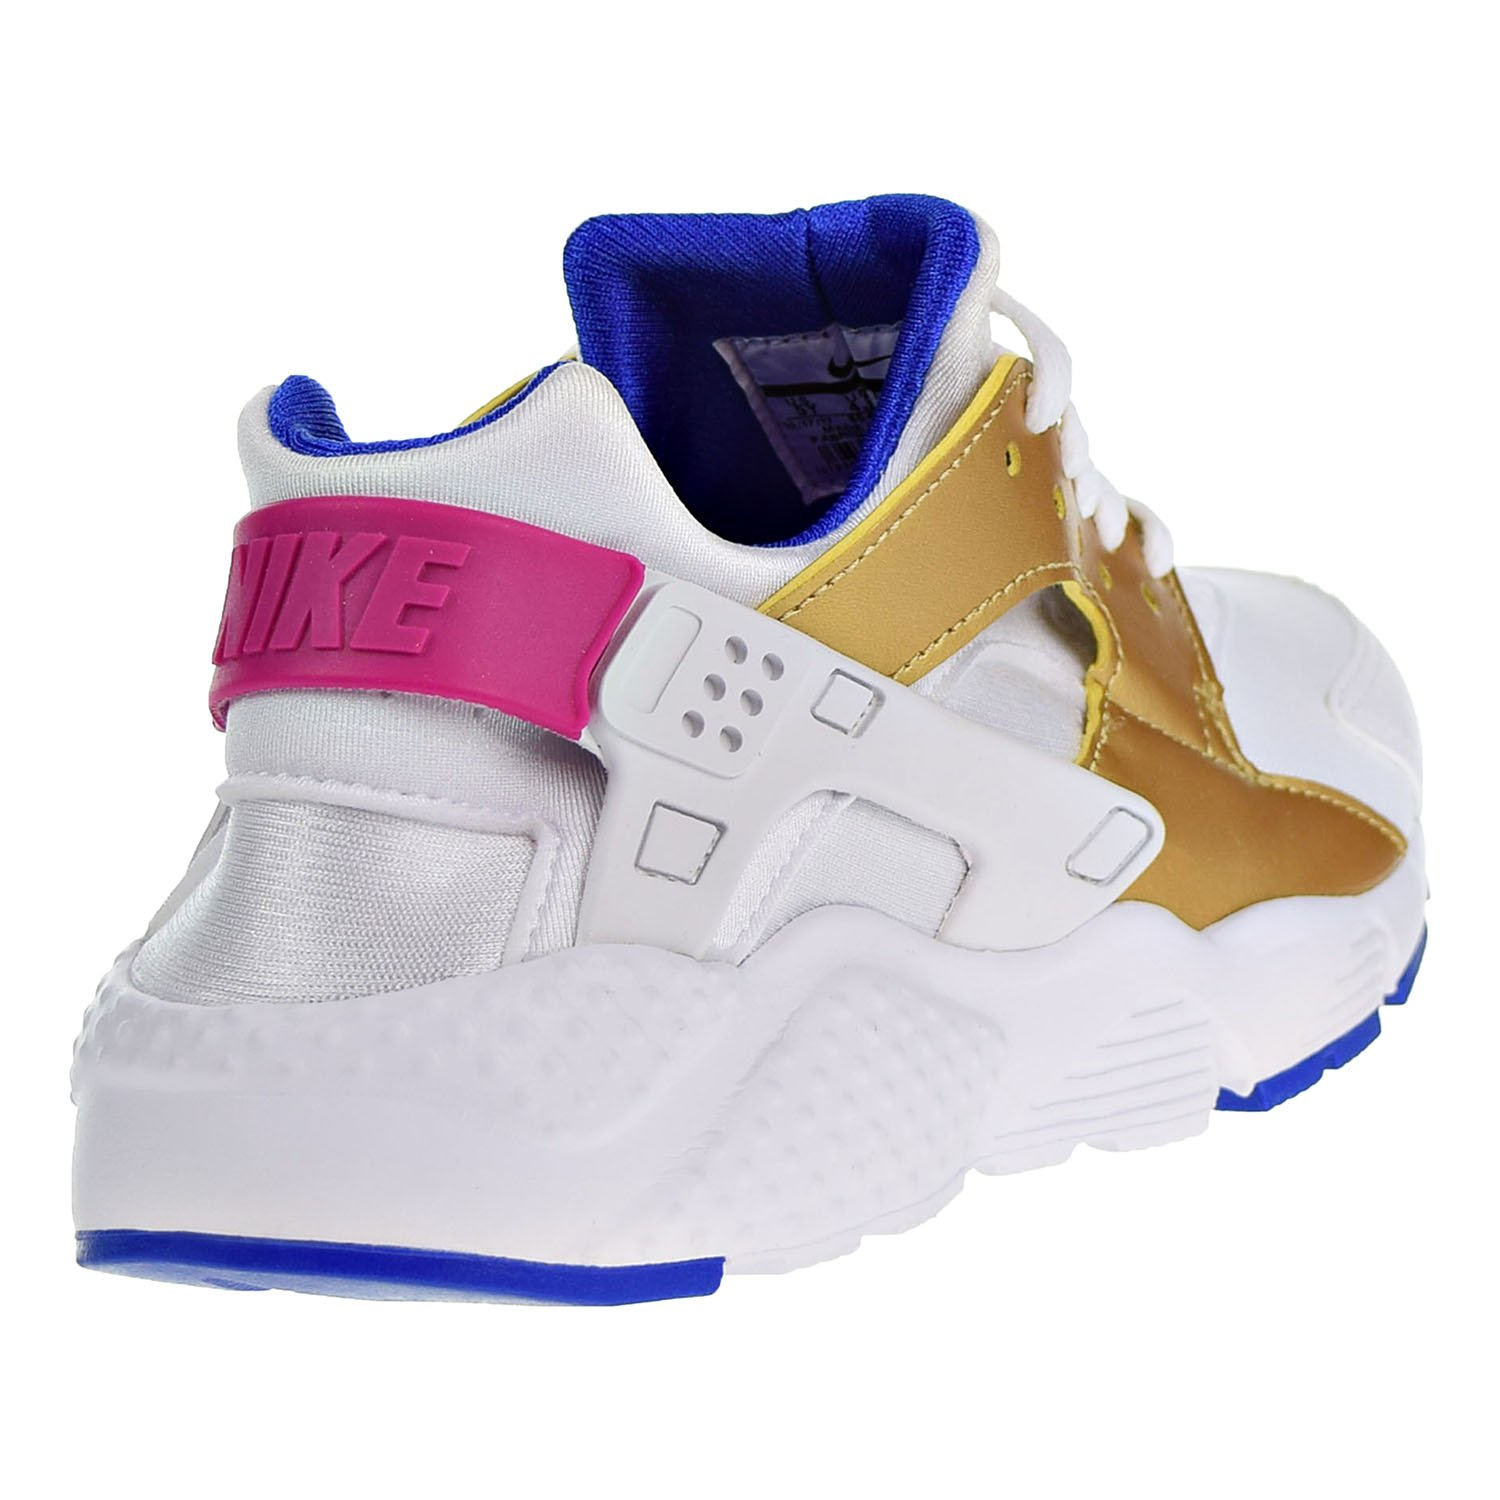 Details about Nike Huarache Run (GS) 654280 109 White Gold Blue Big Kid's Sportswear Shoes